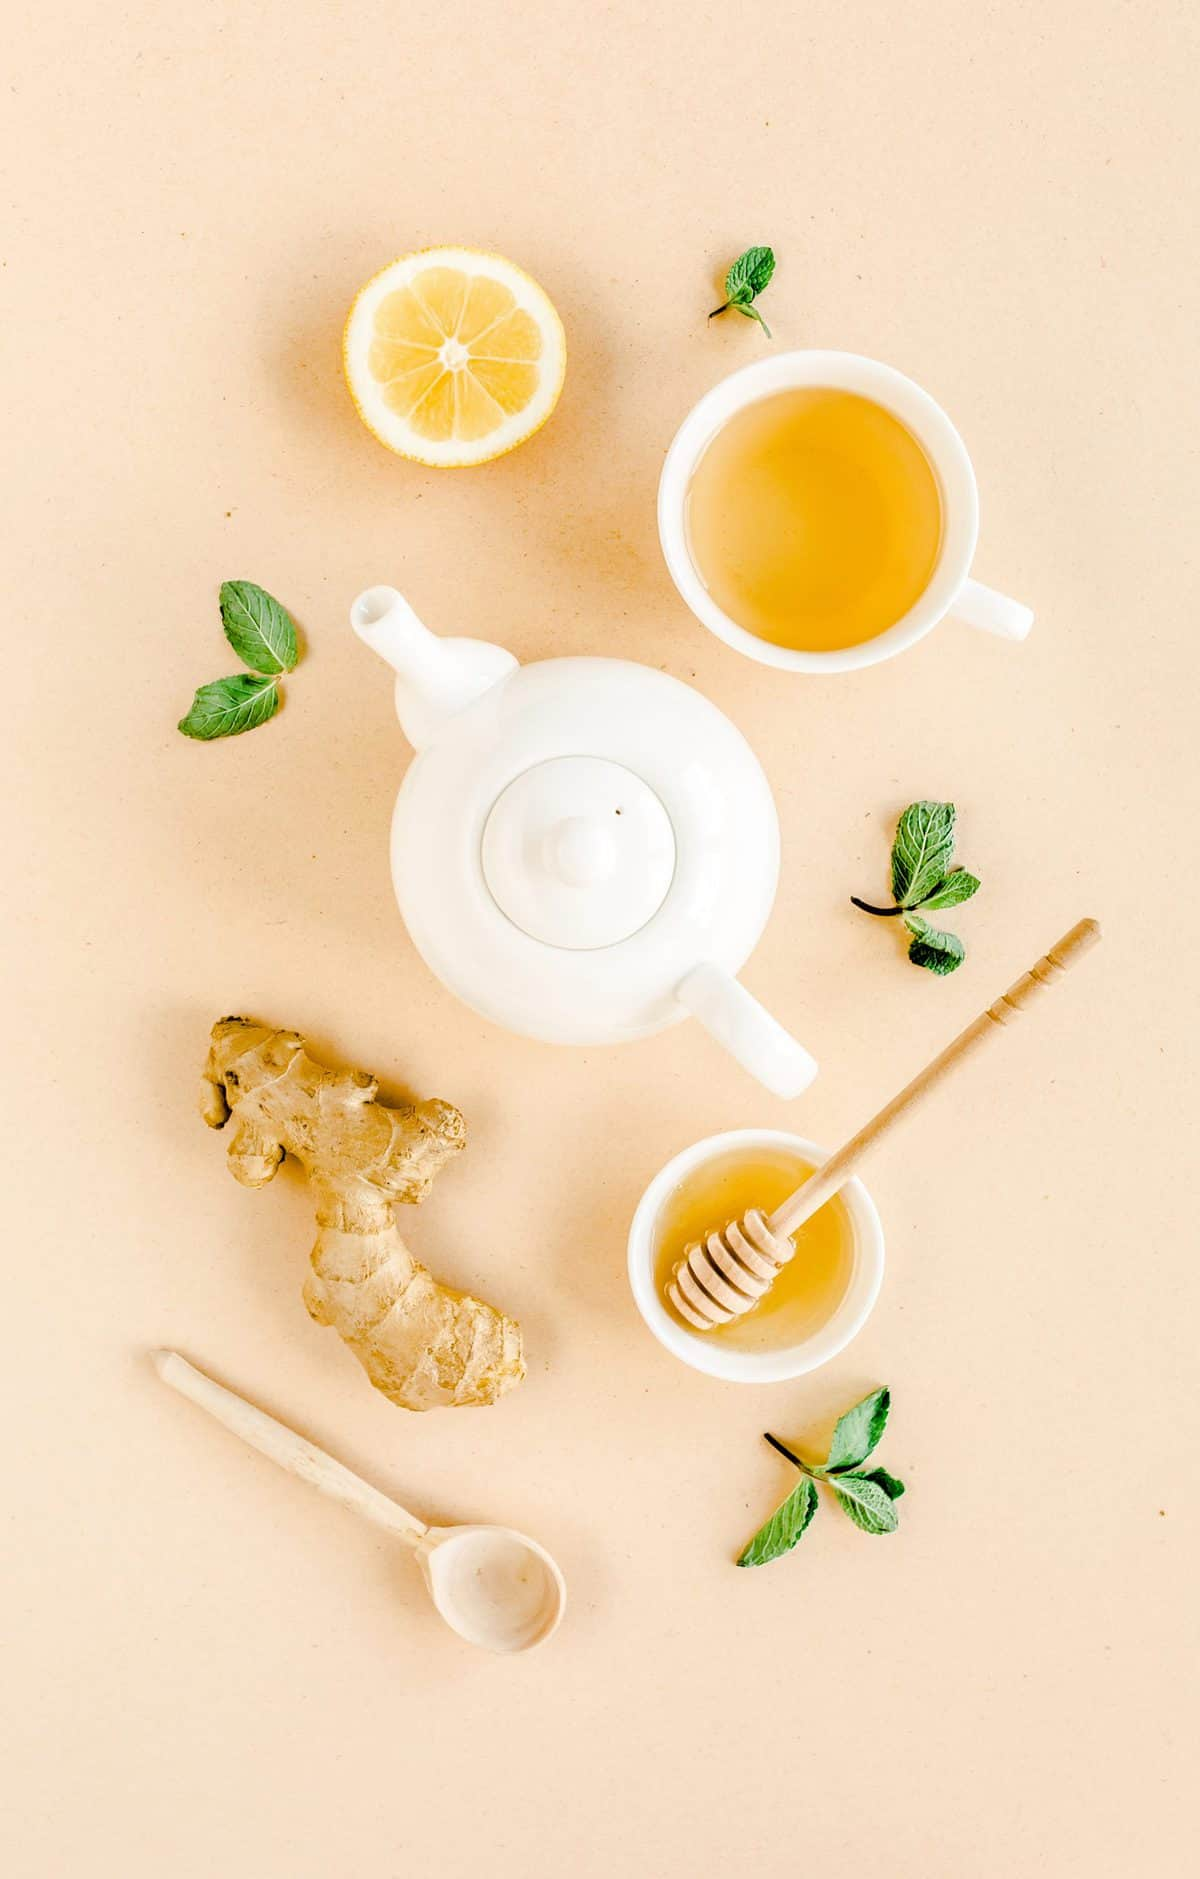 A collage of ingredients to make ginger tea to boost your immune system - honey, ginger root, lemon, tea pot, and a wooden spoon.